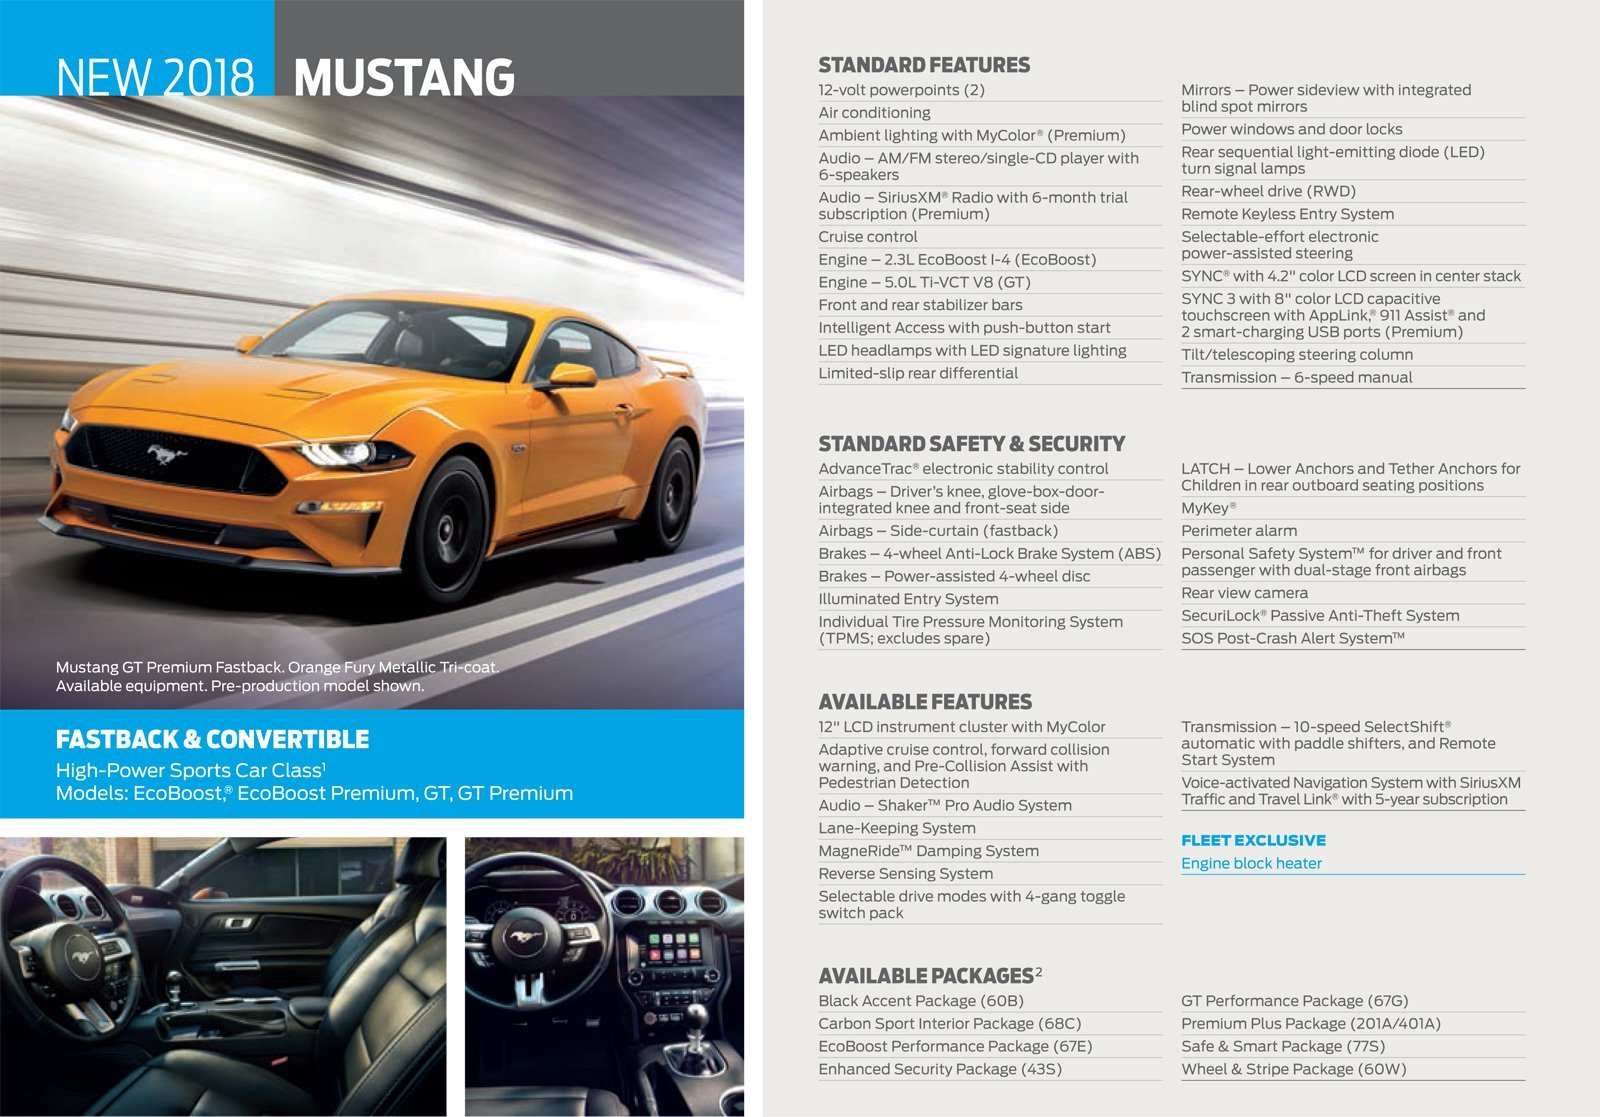 2018 Ford Mustang Standard Features Revealed in Leaked Brochure